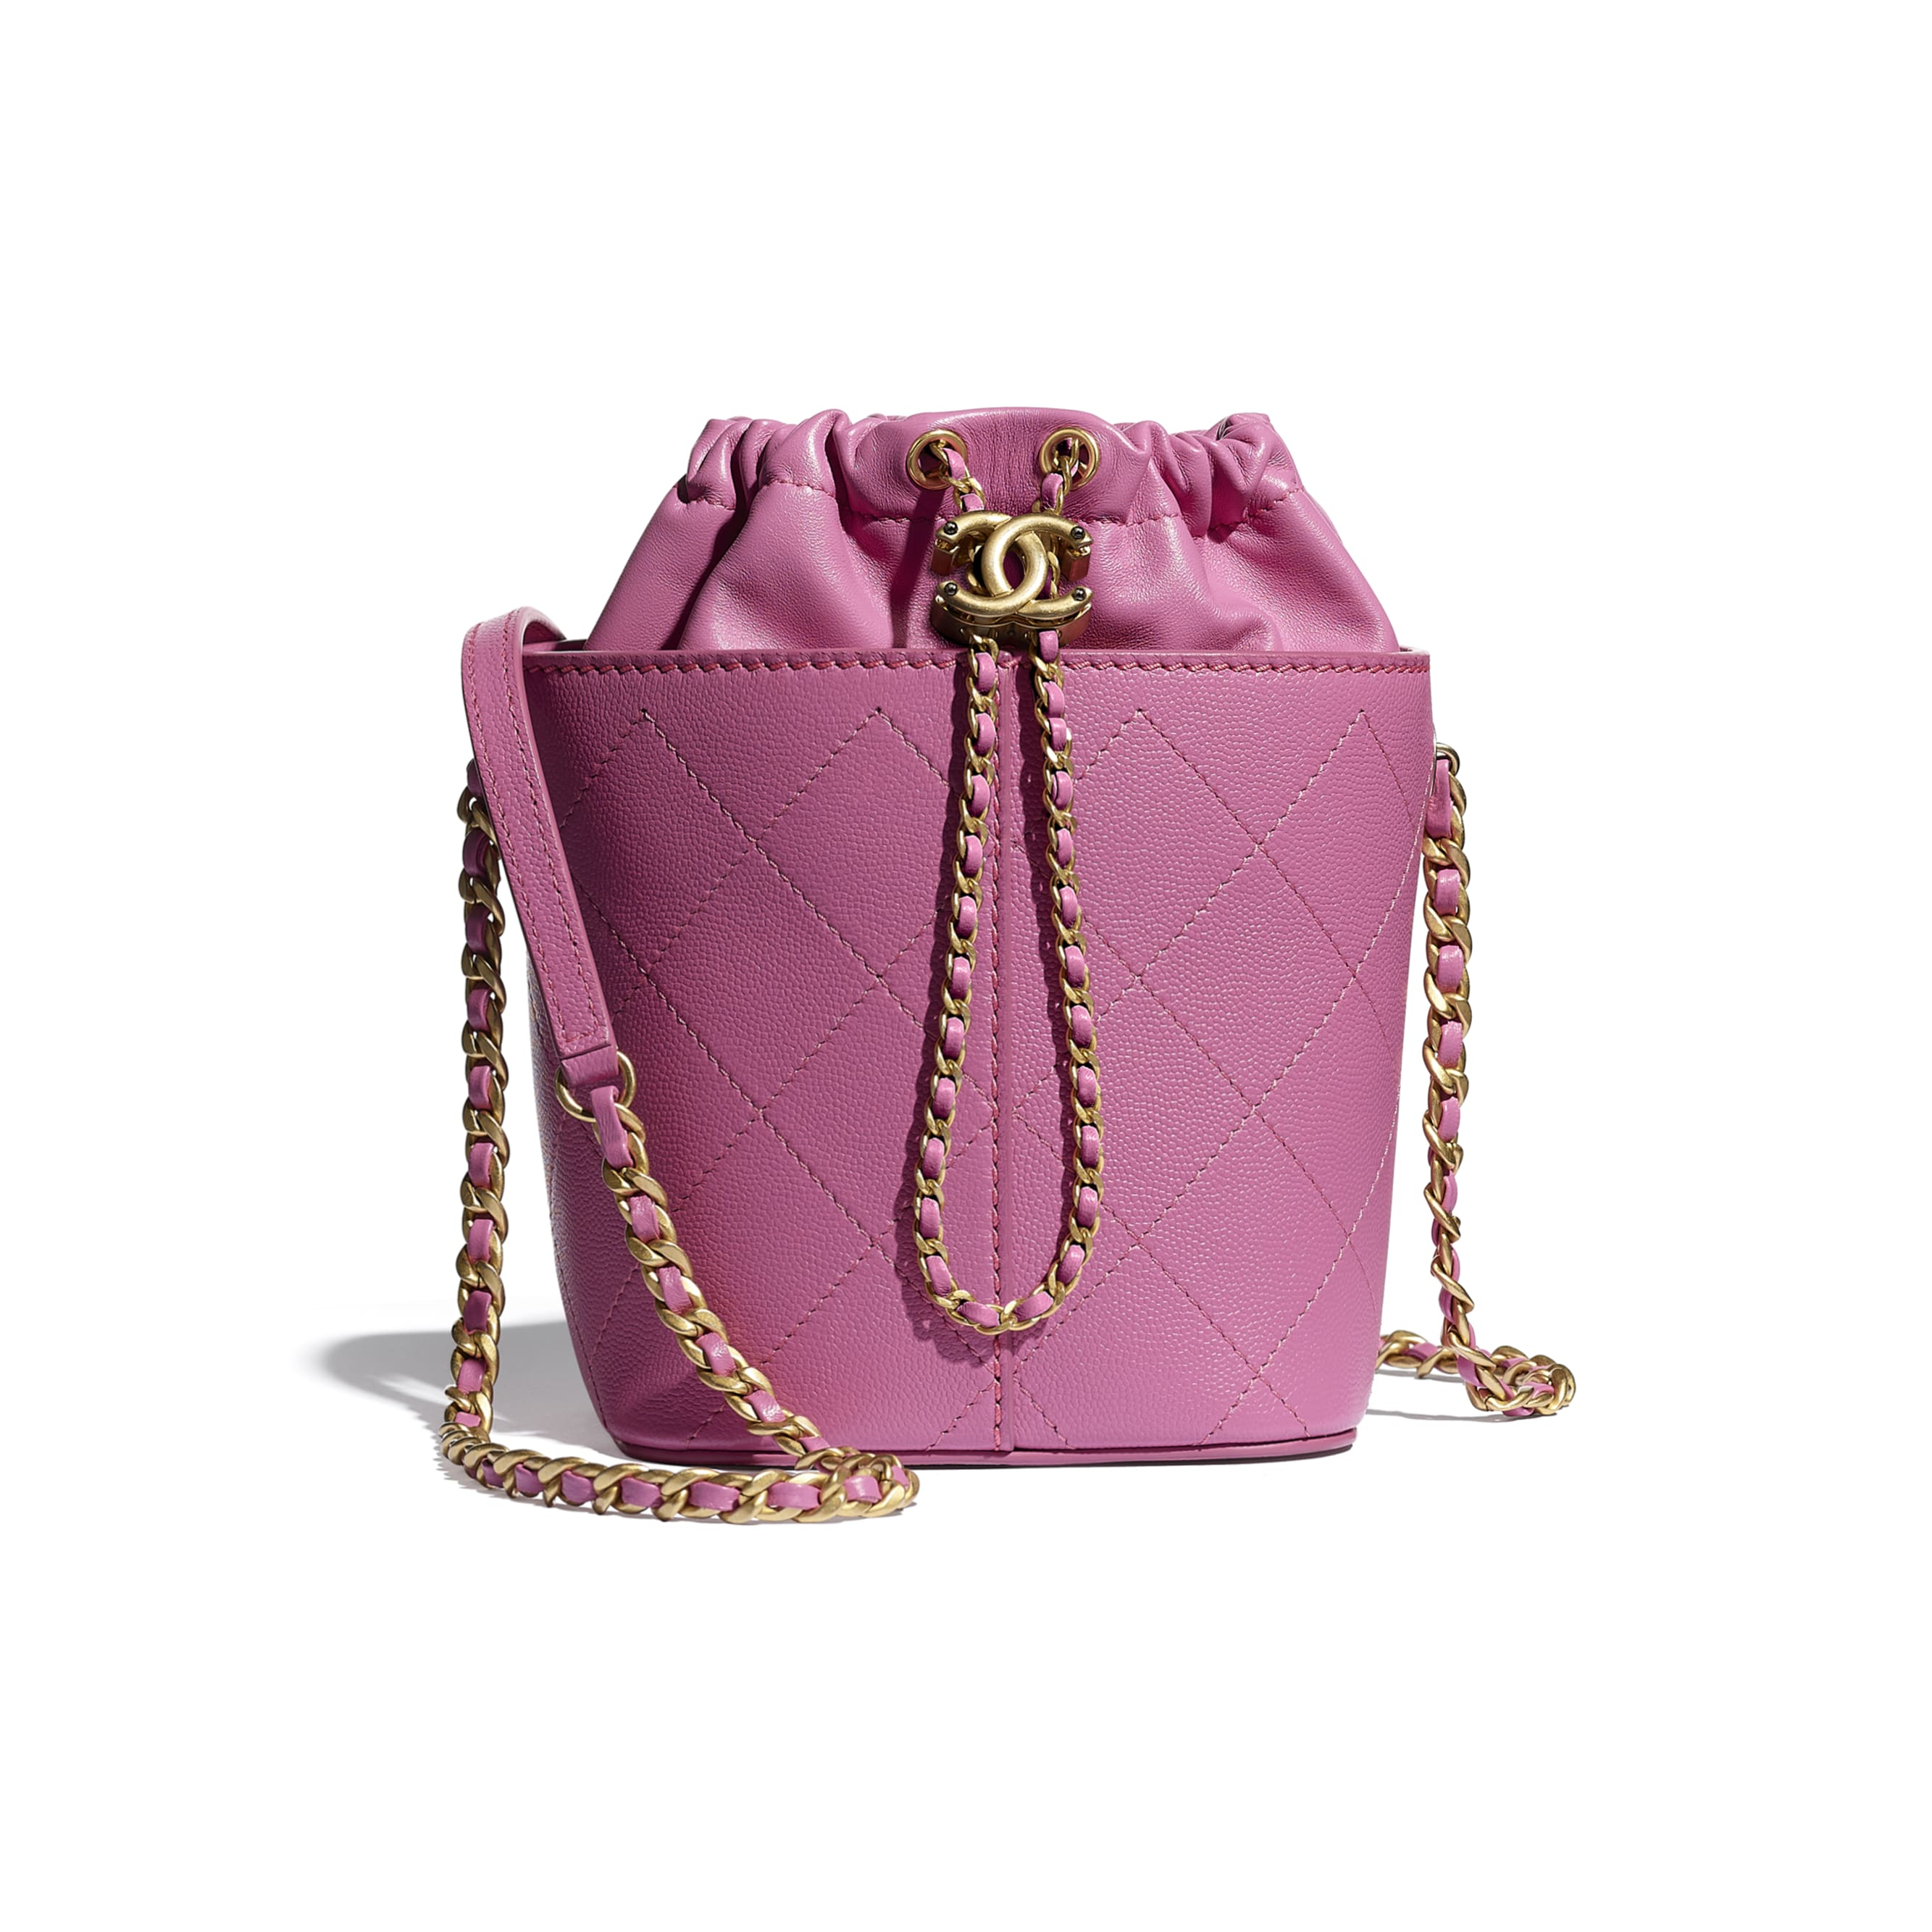 Drawstring Bag - Pink - Grained Lambskin, Smooth Lambskin & Gold-Tone Metal - CHANEL - Default view - see standard sized version